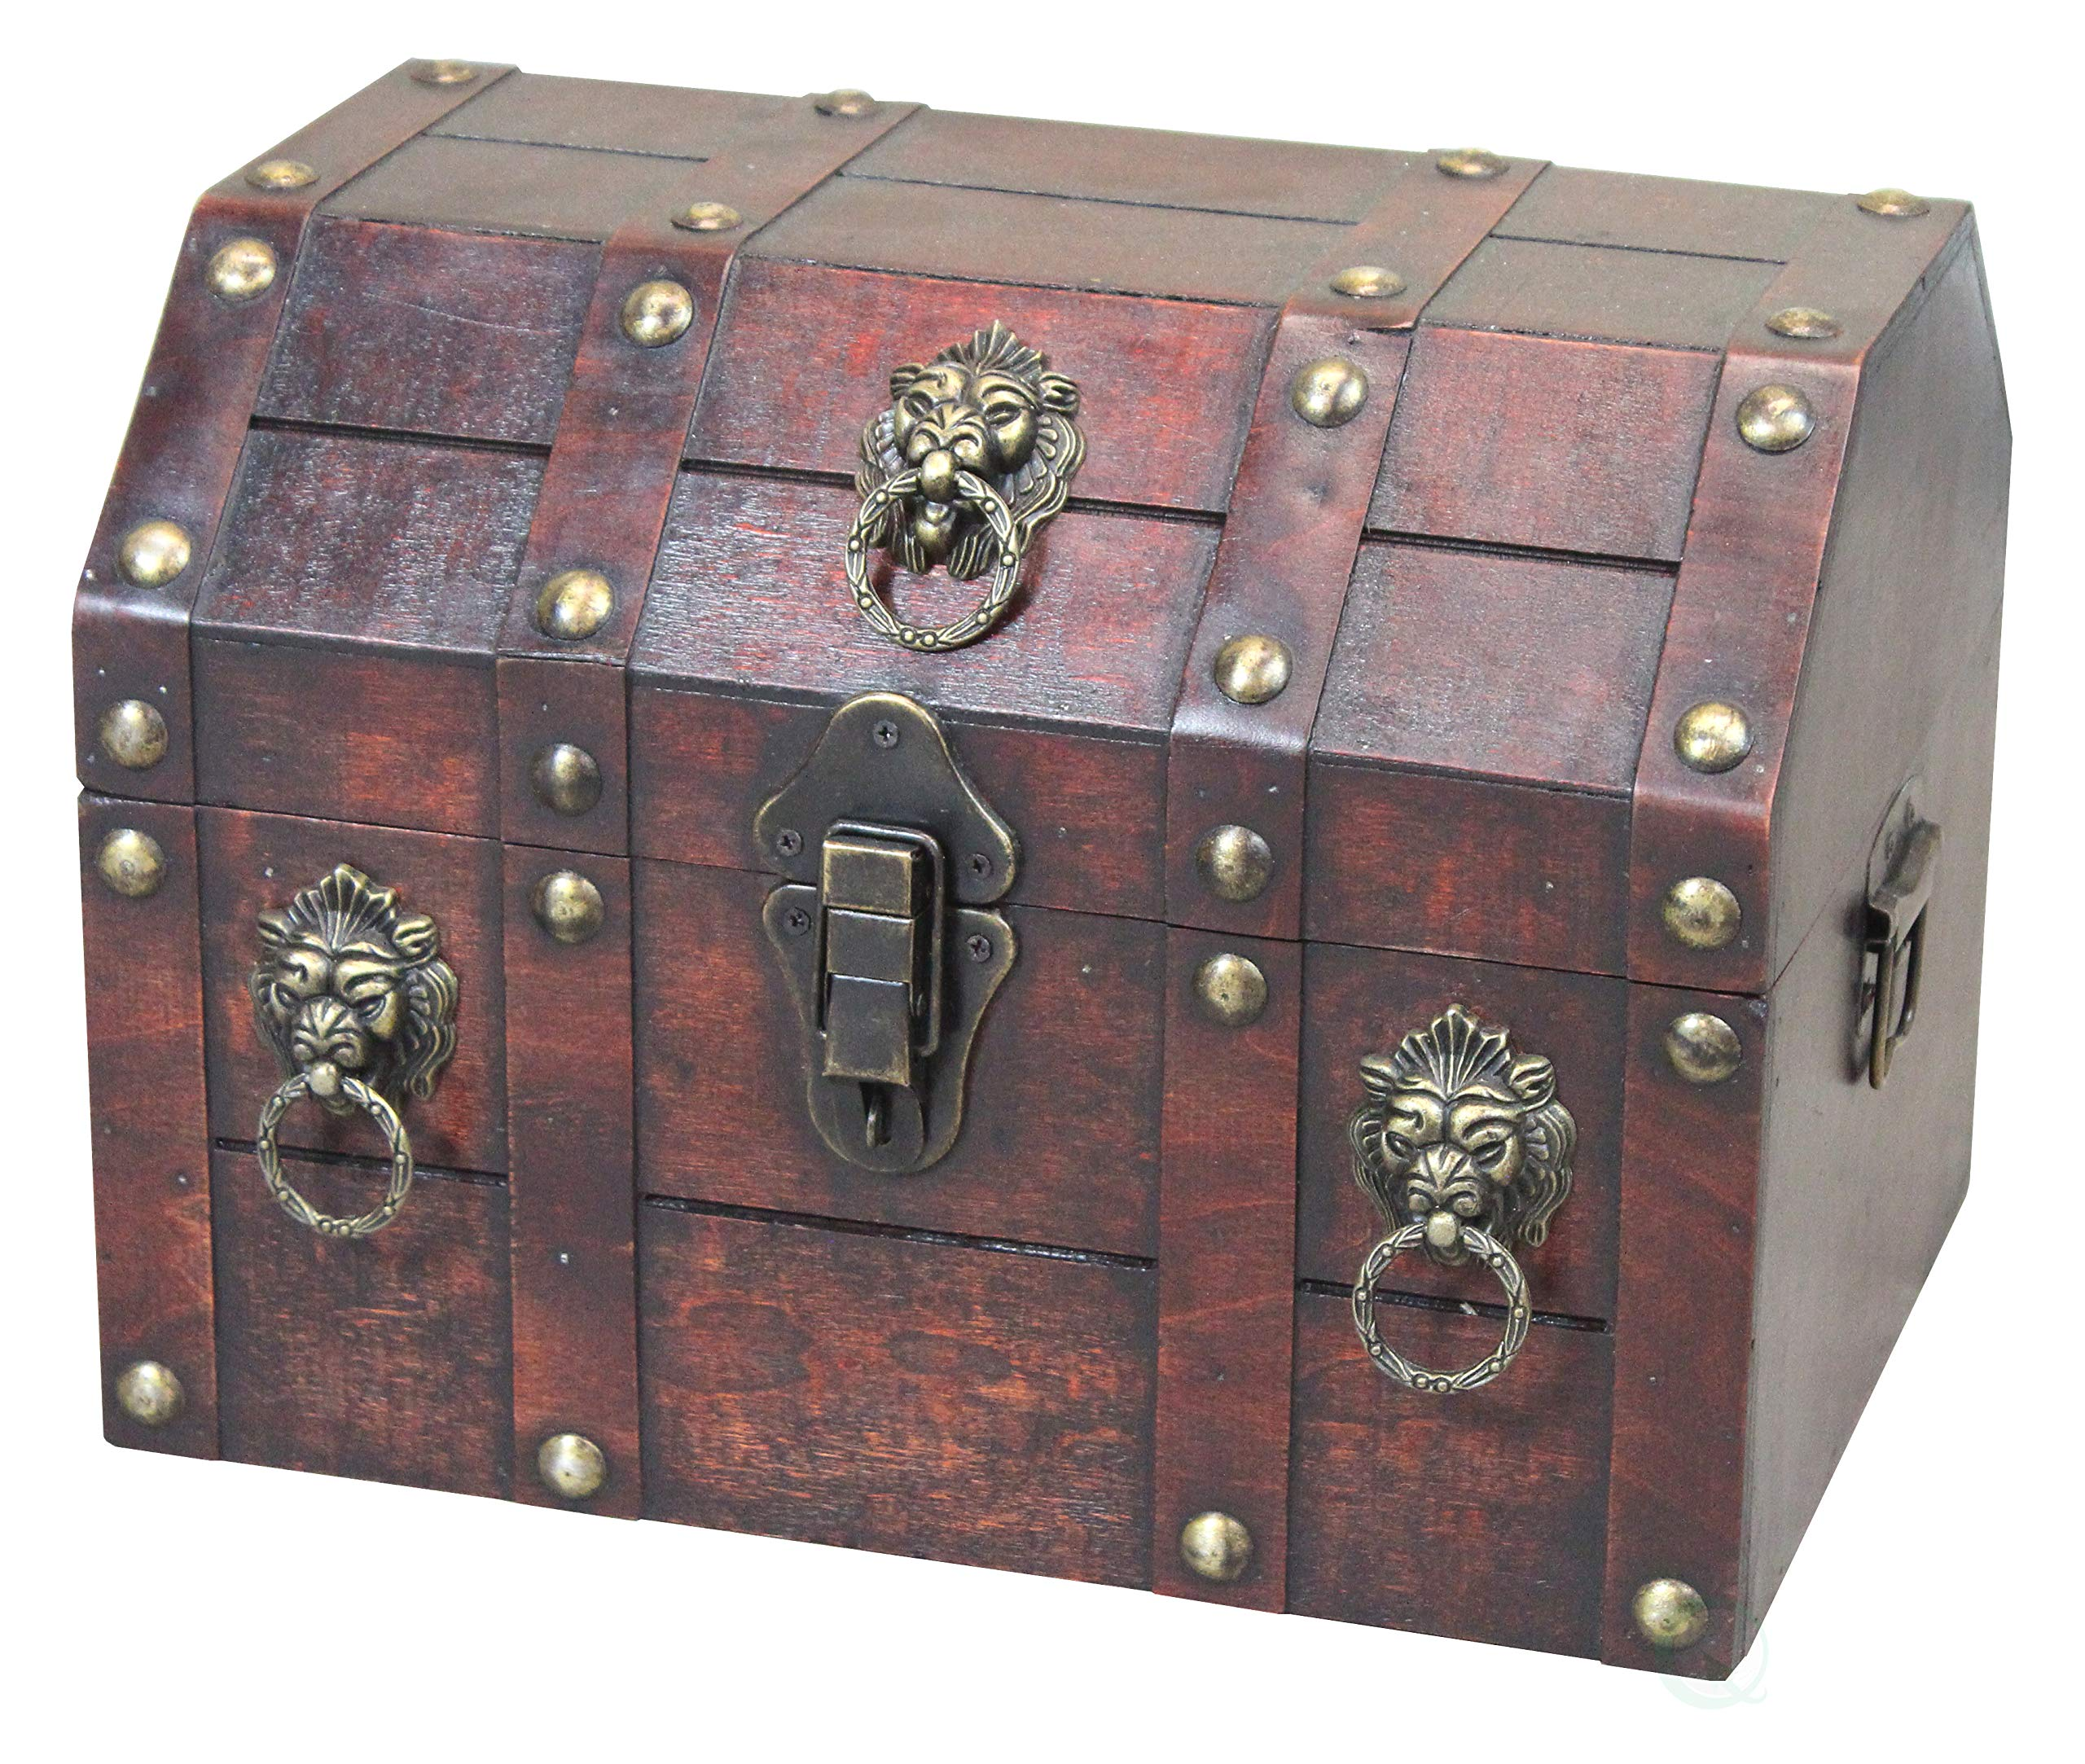 Vintiquewise Antique Wooden Pirate Treasure Chest with with Lion Rings and Lockable Latch, Black by Vintiquewise